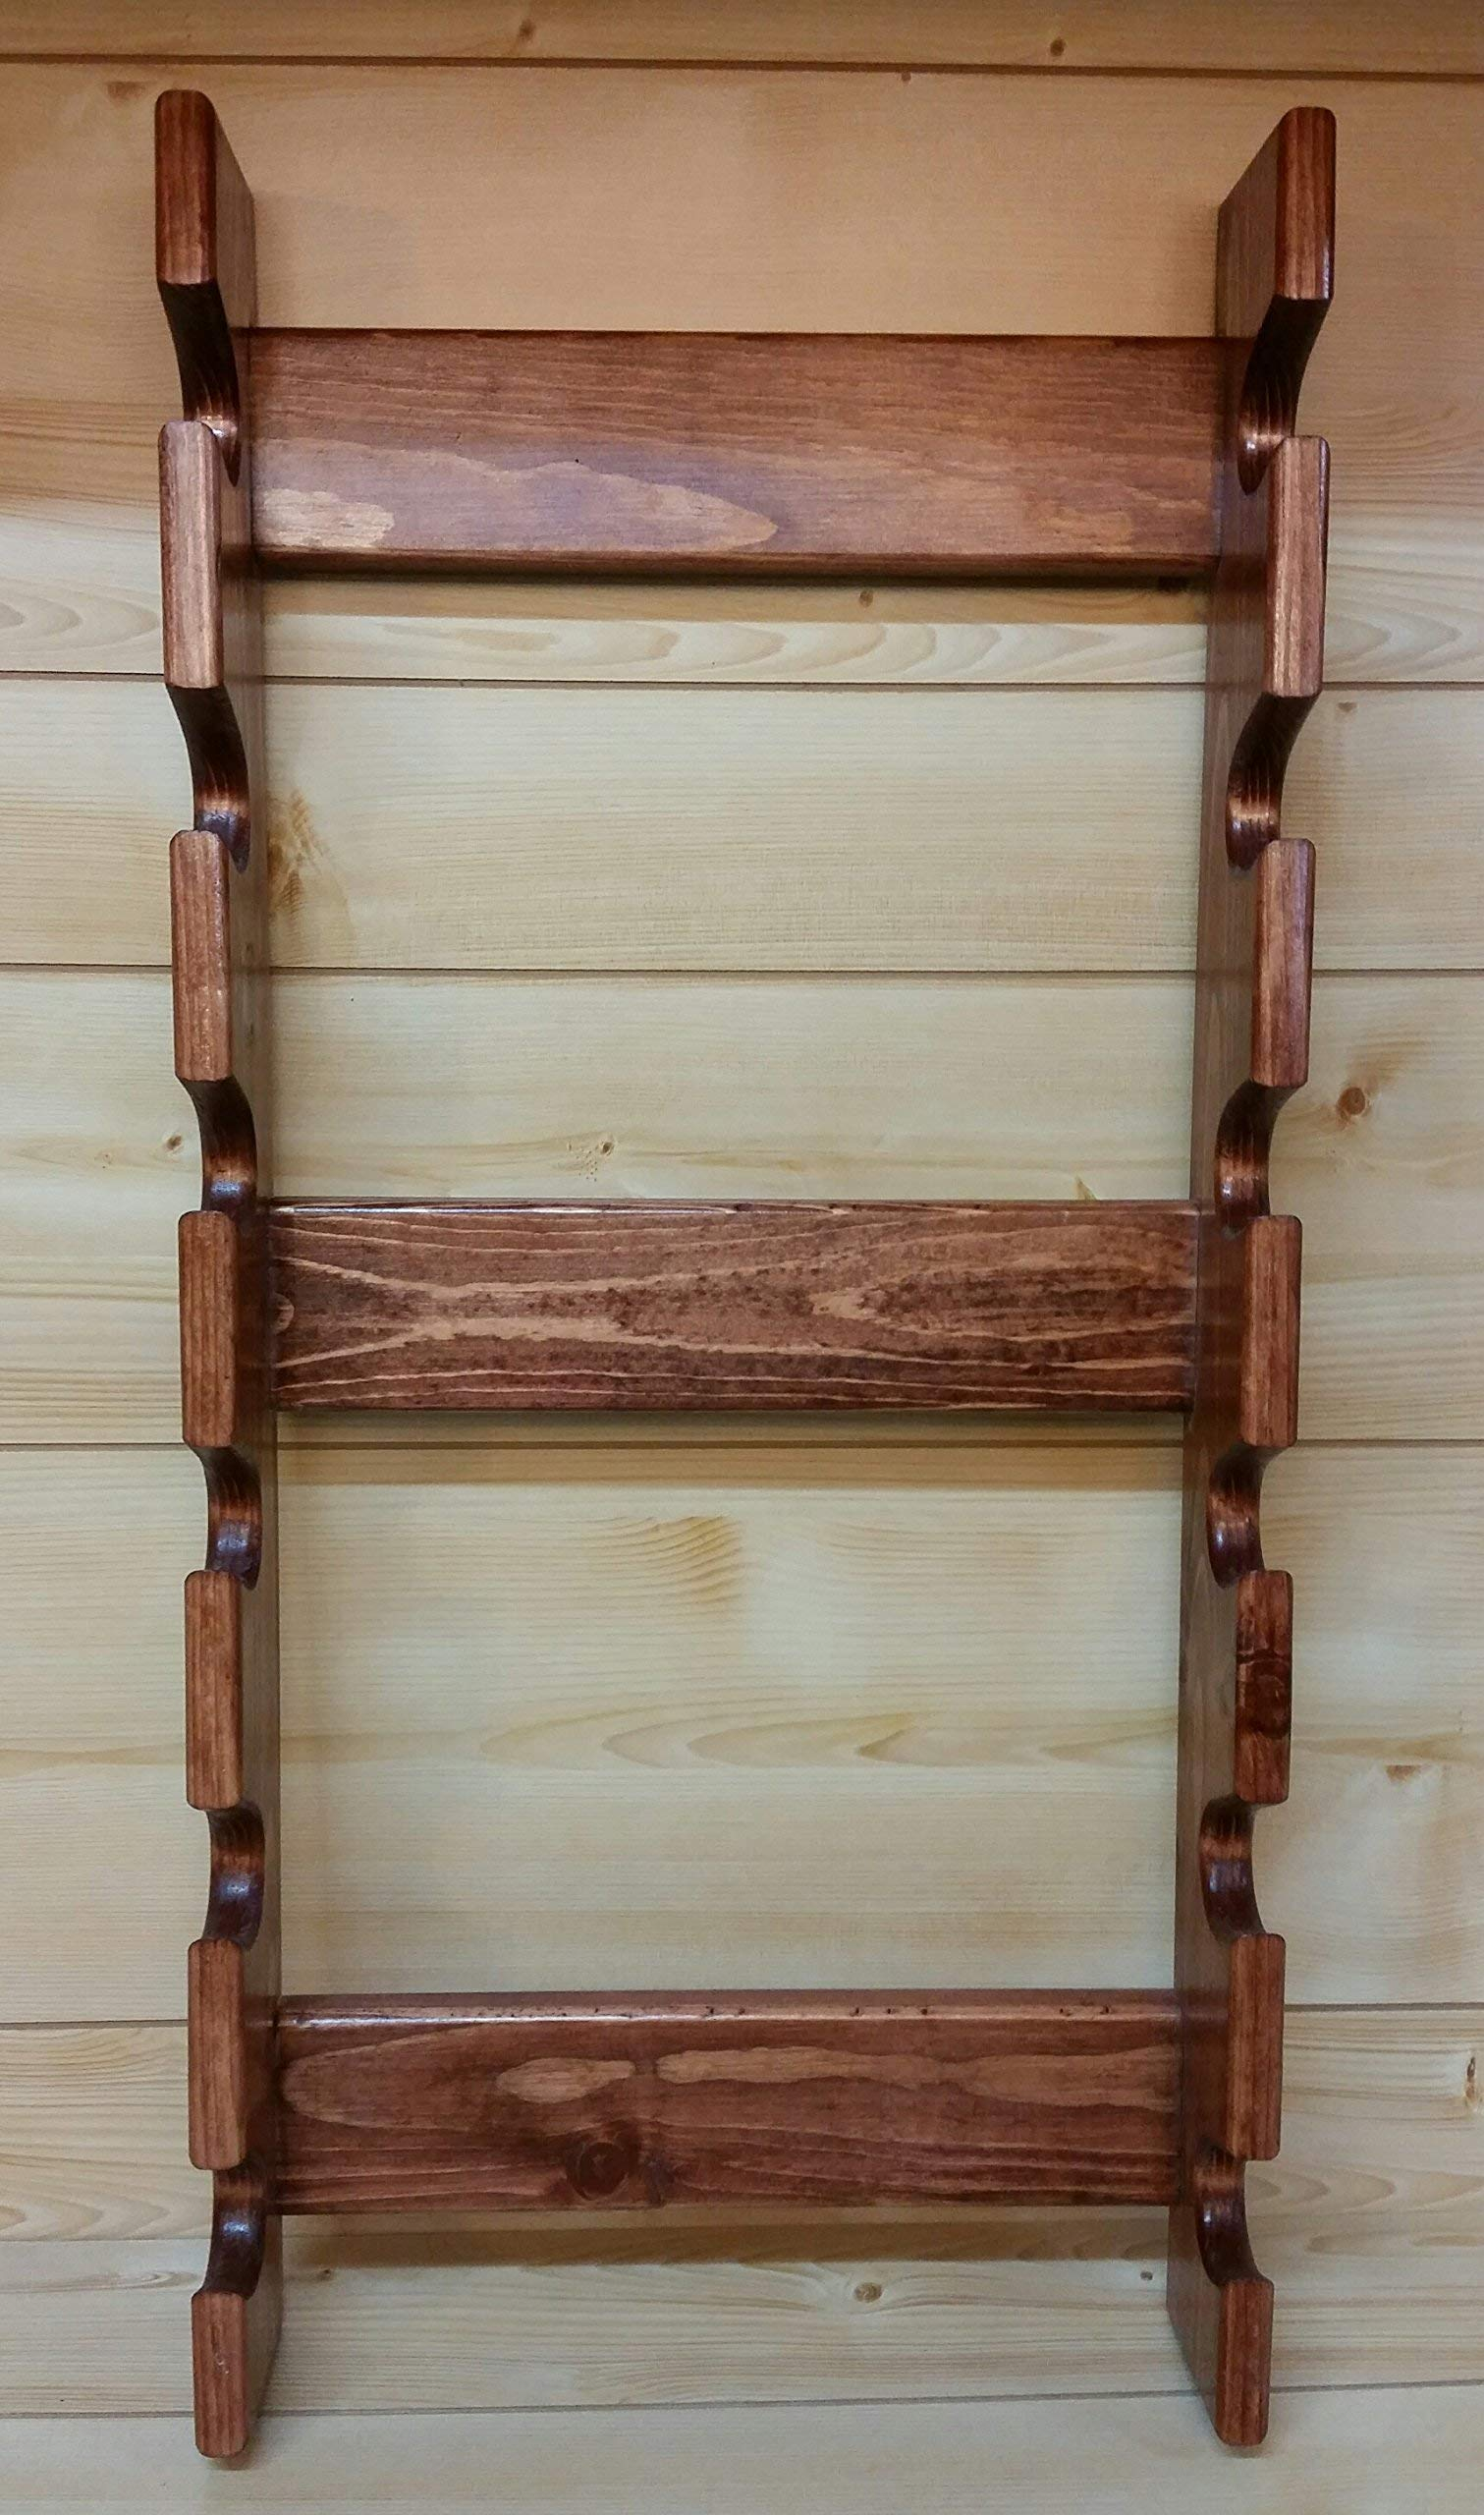 Rolling Pin Rack with Six Slots - Multiple Rolling Pin Rack - Rolling Pin Holder - Rolling Pin Storage - Rolling Pin Rack for 6 by Rusty Nail Custom Woodworking (Image #6)